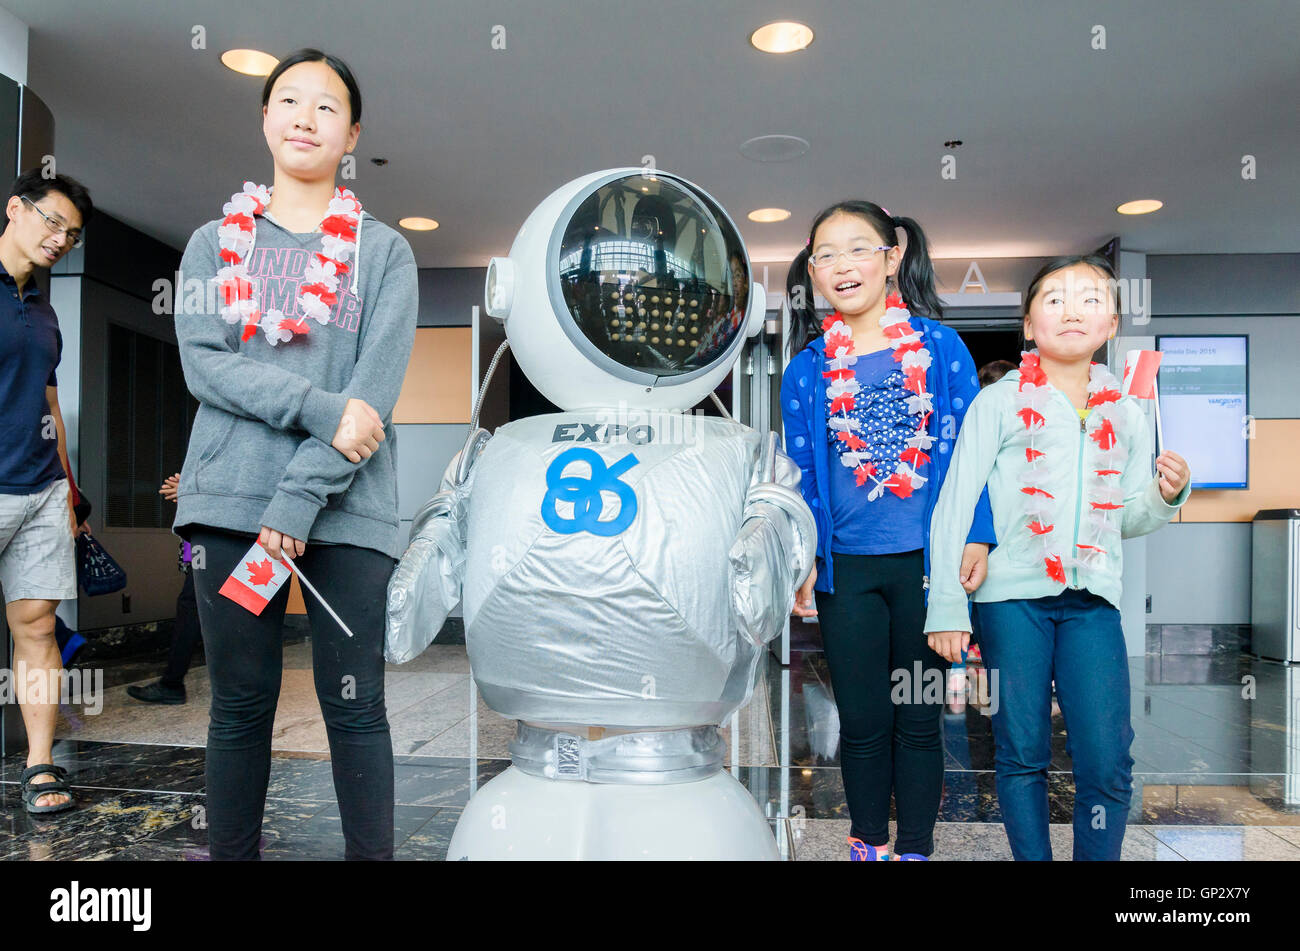 Kids celebrate Canada Day with Expo Ernie robot  downtown Vancouver, British Columbia, Canada, - Stock Image